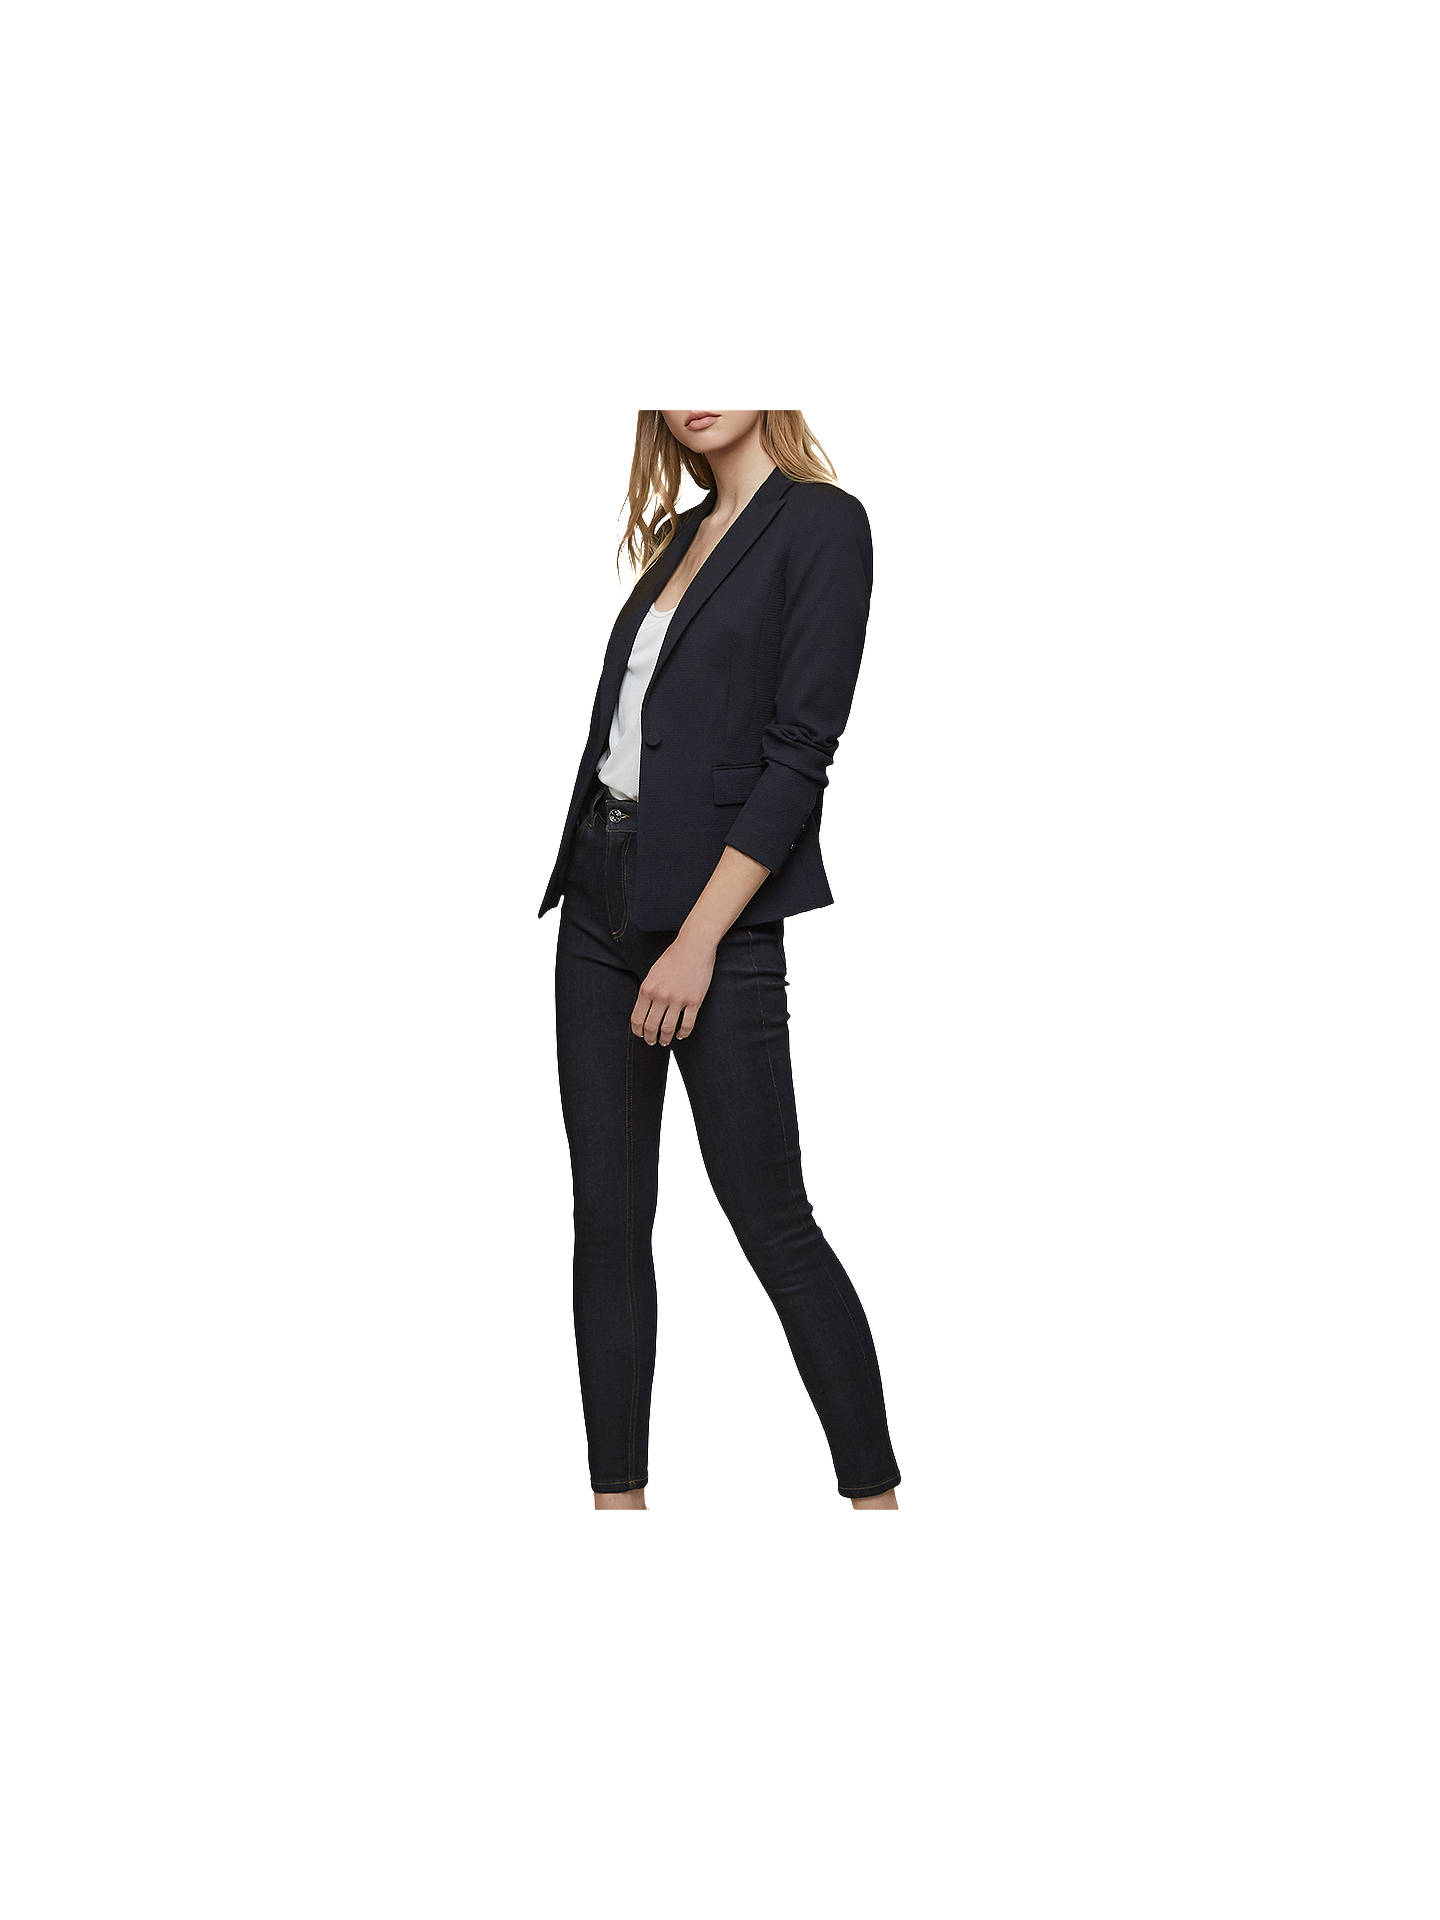 BuyReiss Tilda Textured Single Breasted Blazer, Night Navy, 6 Online at johnlewis.com